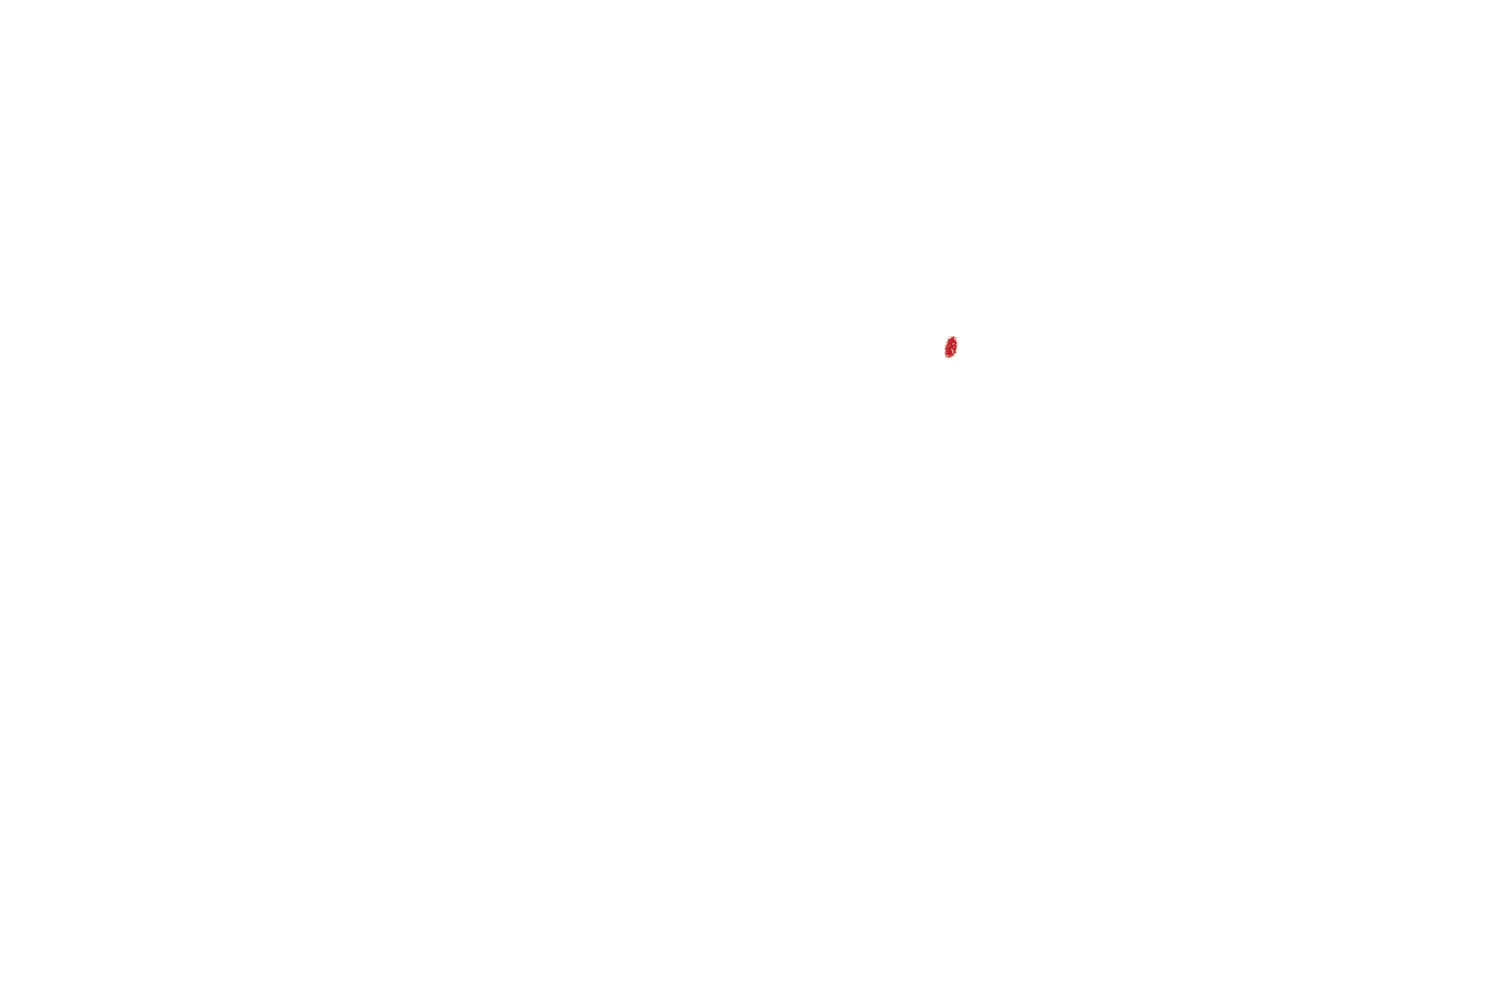 Alfred's Pizzeria. Small Bar